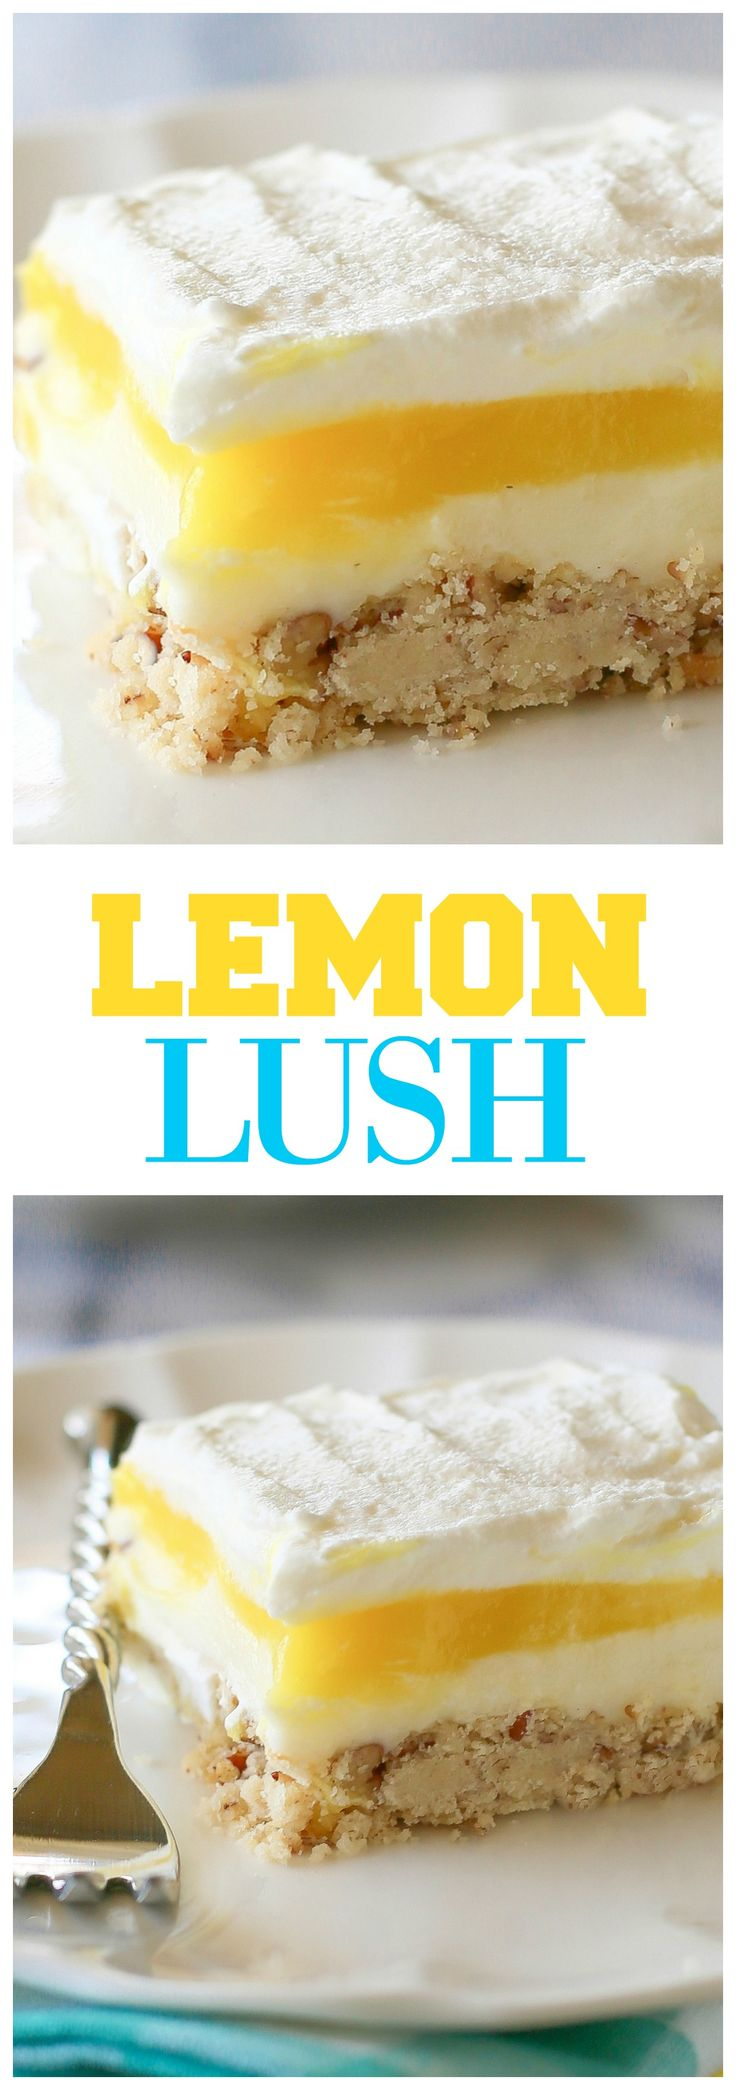 Lemon Lush - a light and refreshing lemon dessert with a shortbread crust. the-girl-who-ate-everything.com